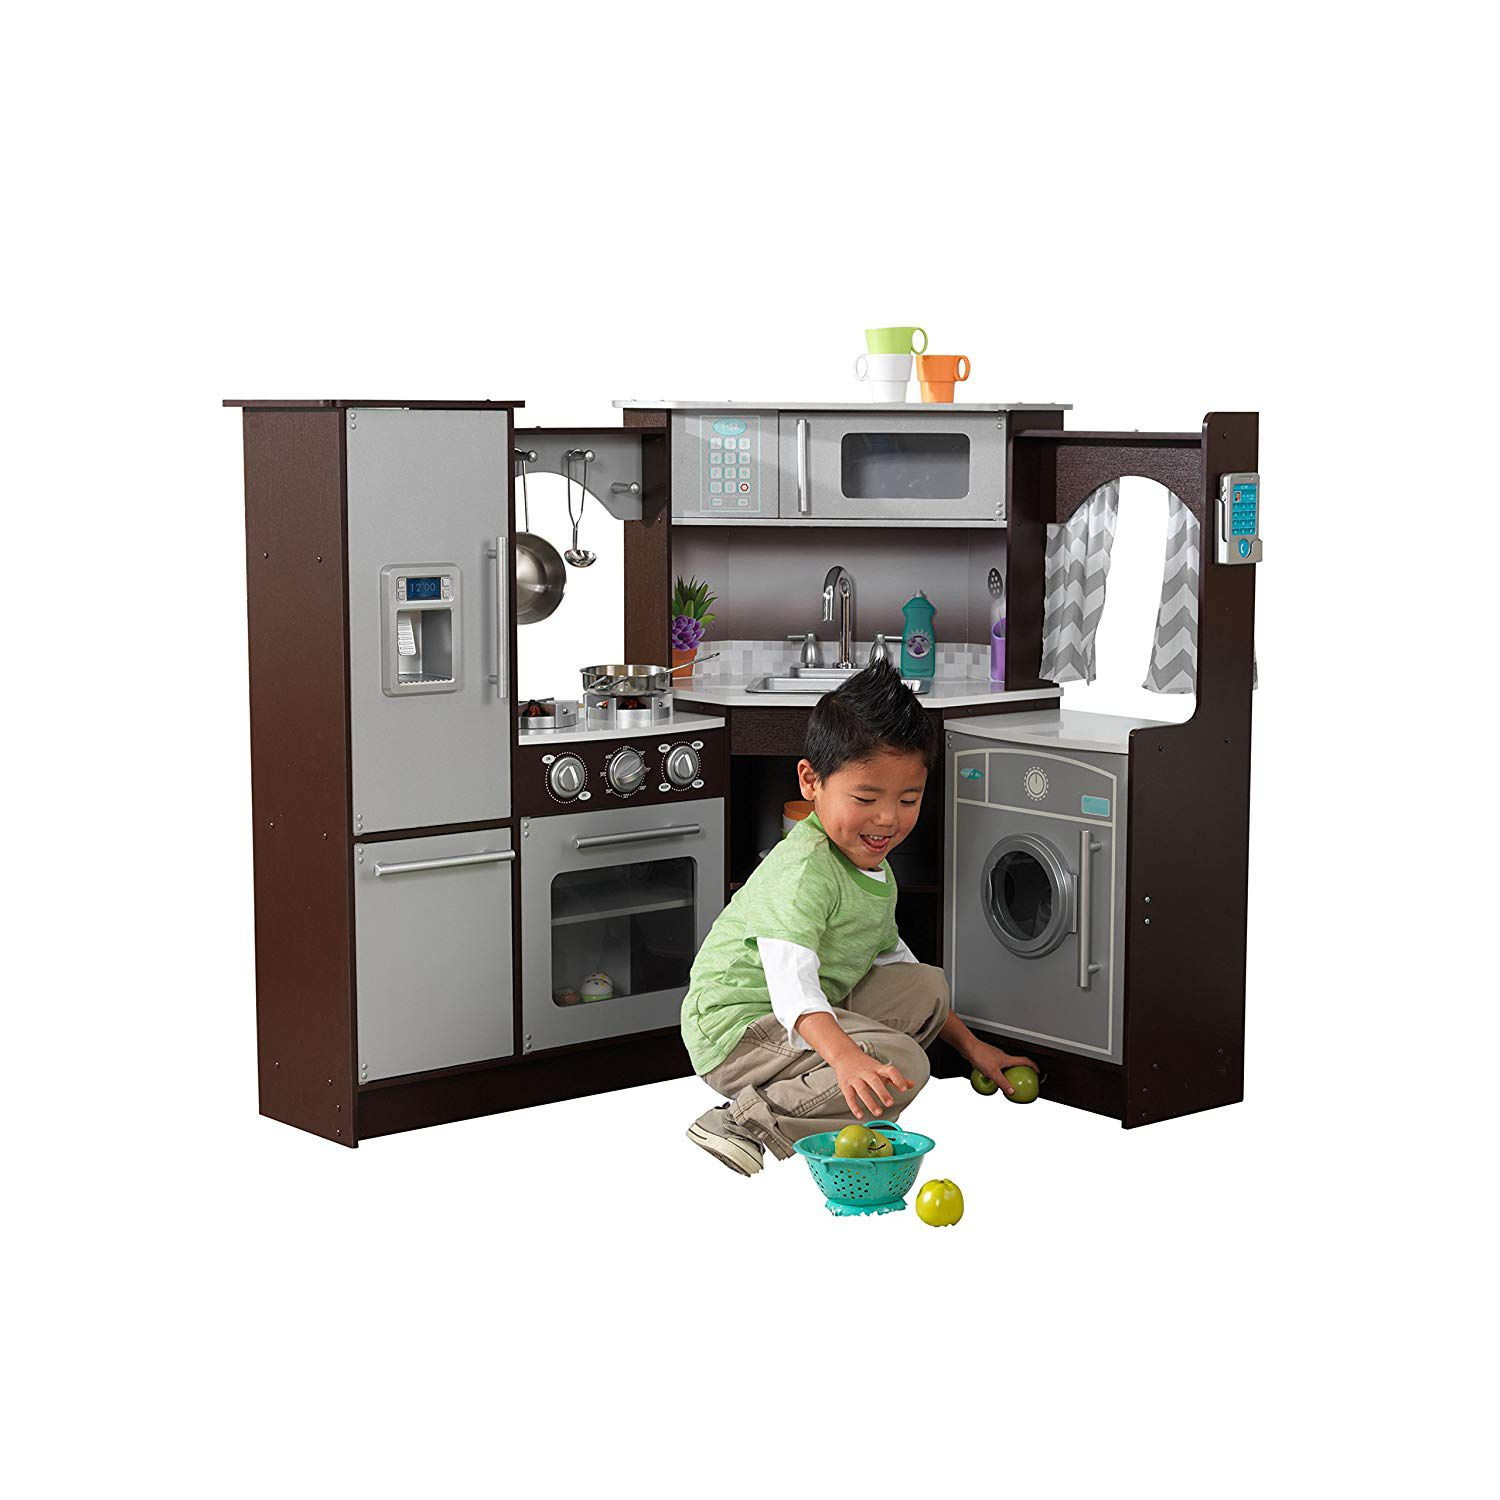 Kitchen Set Instan: The 8 Best Kitchen Sets For Kids In 2019